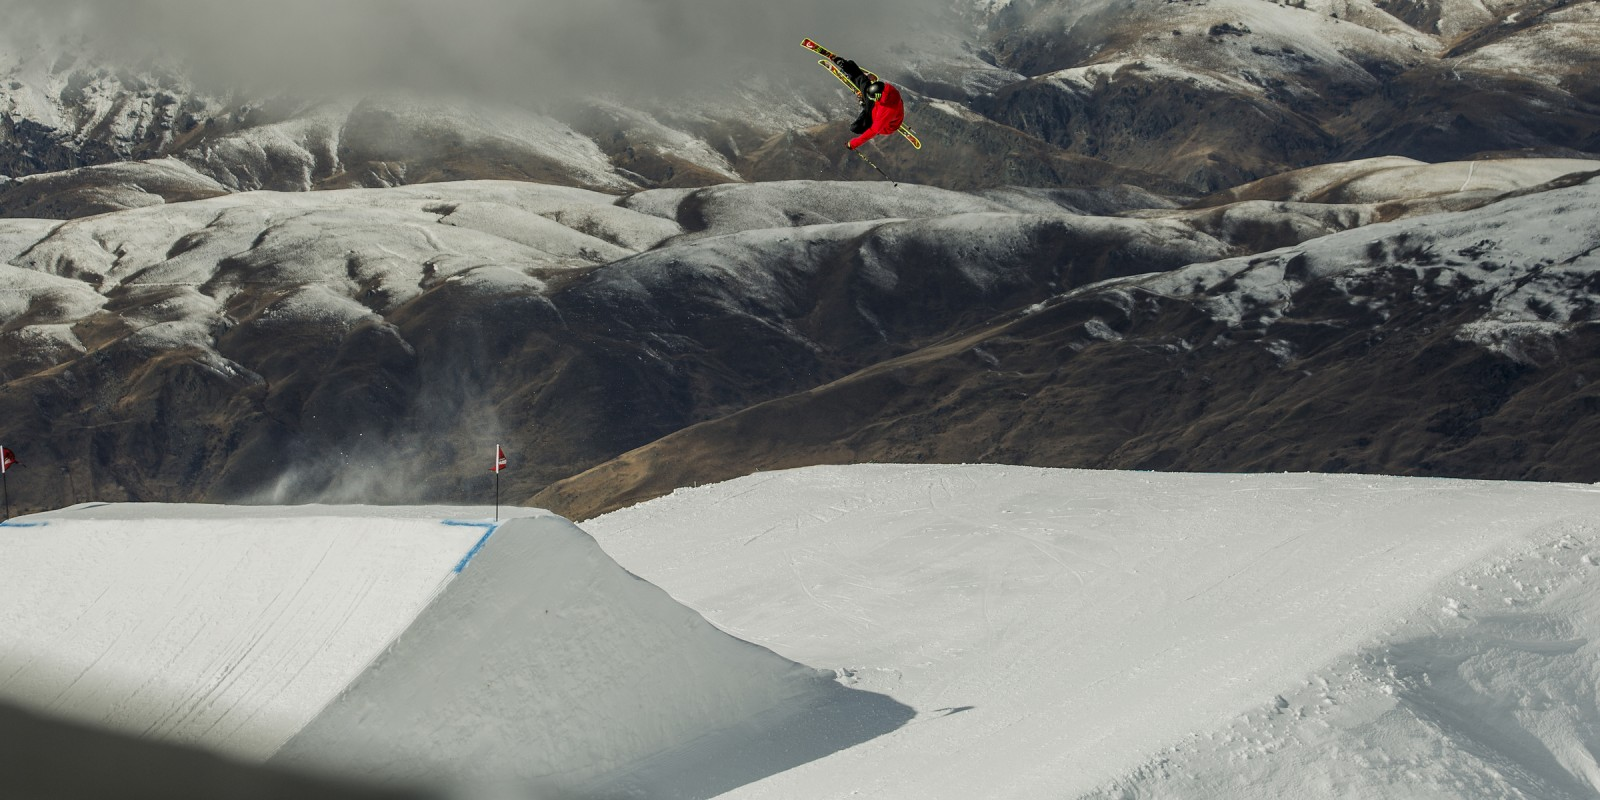 Evan McEachran competes in the New Zealand Winter games.